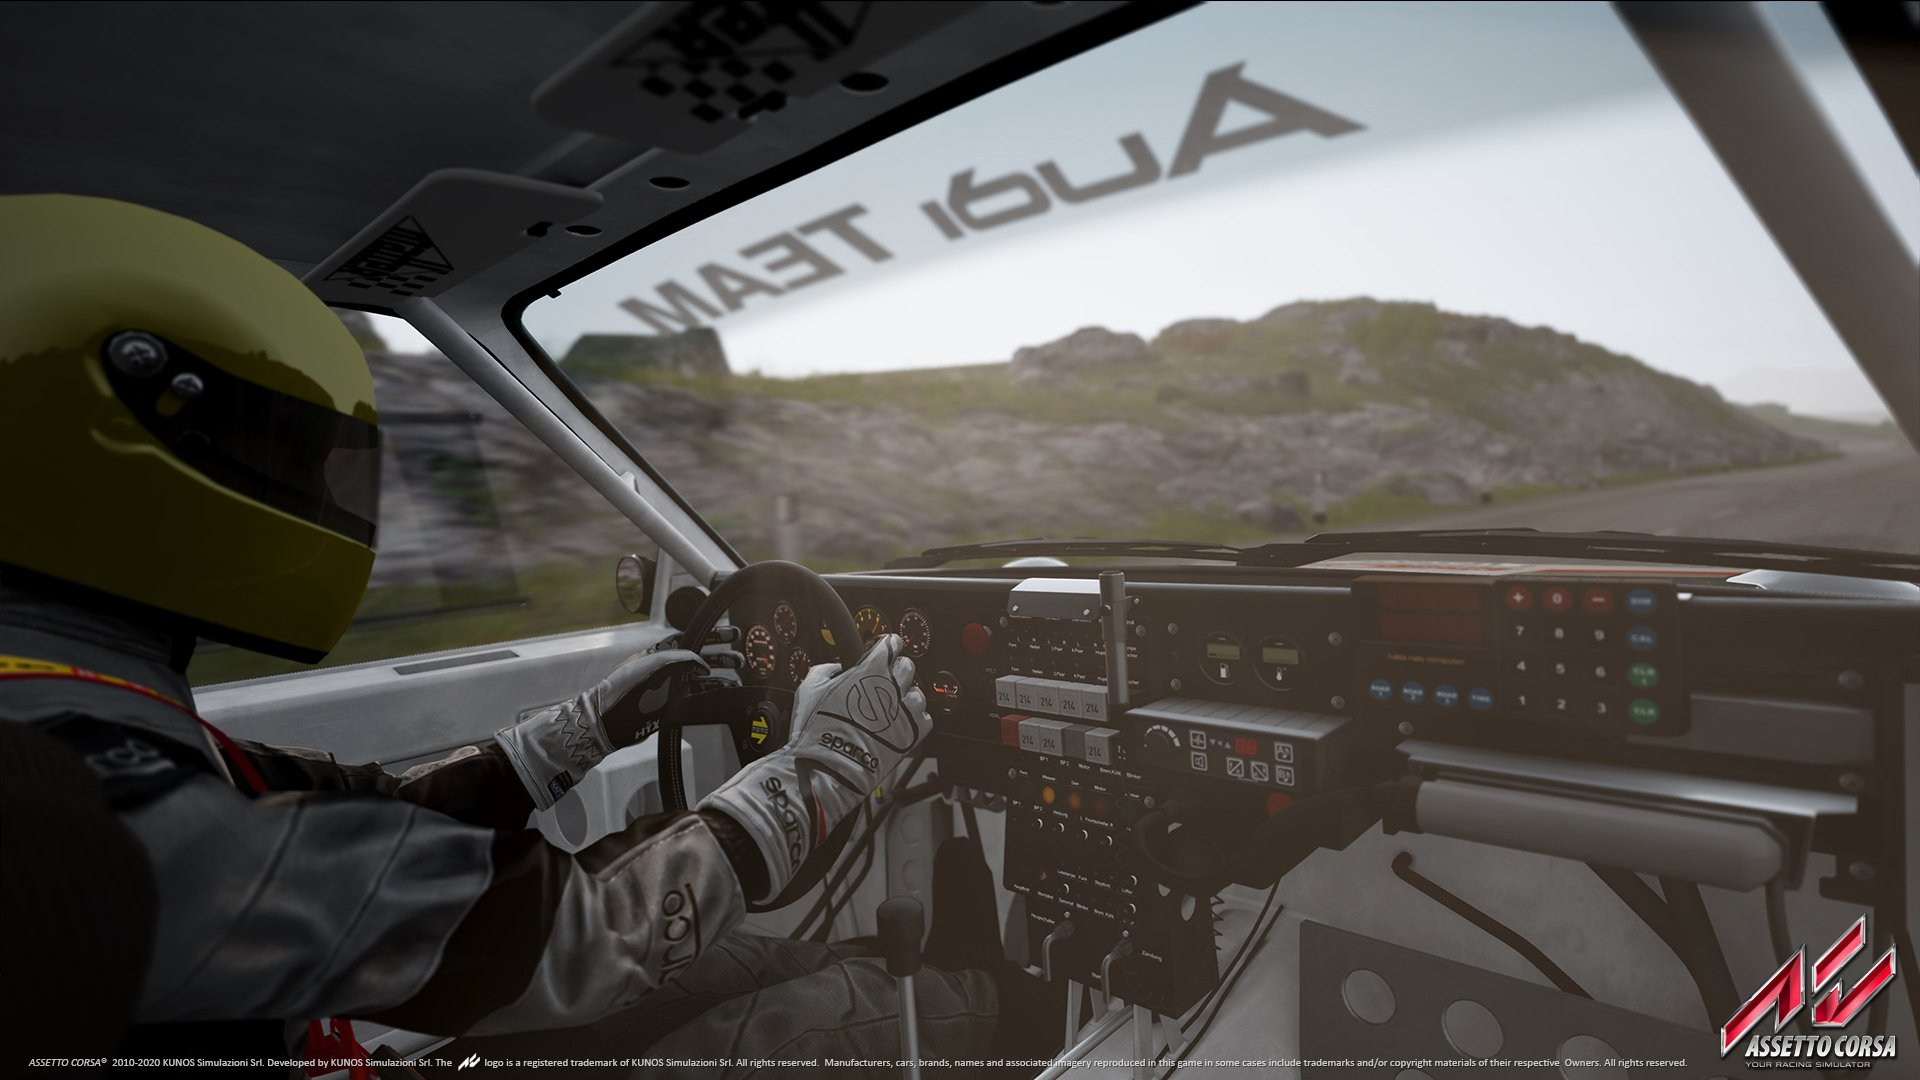 Asset to corsa download cars 1